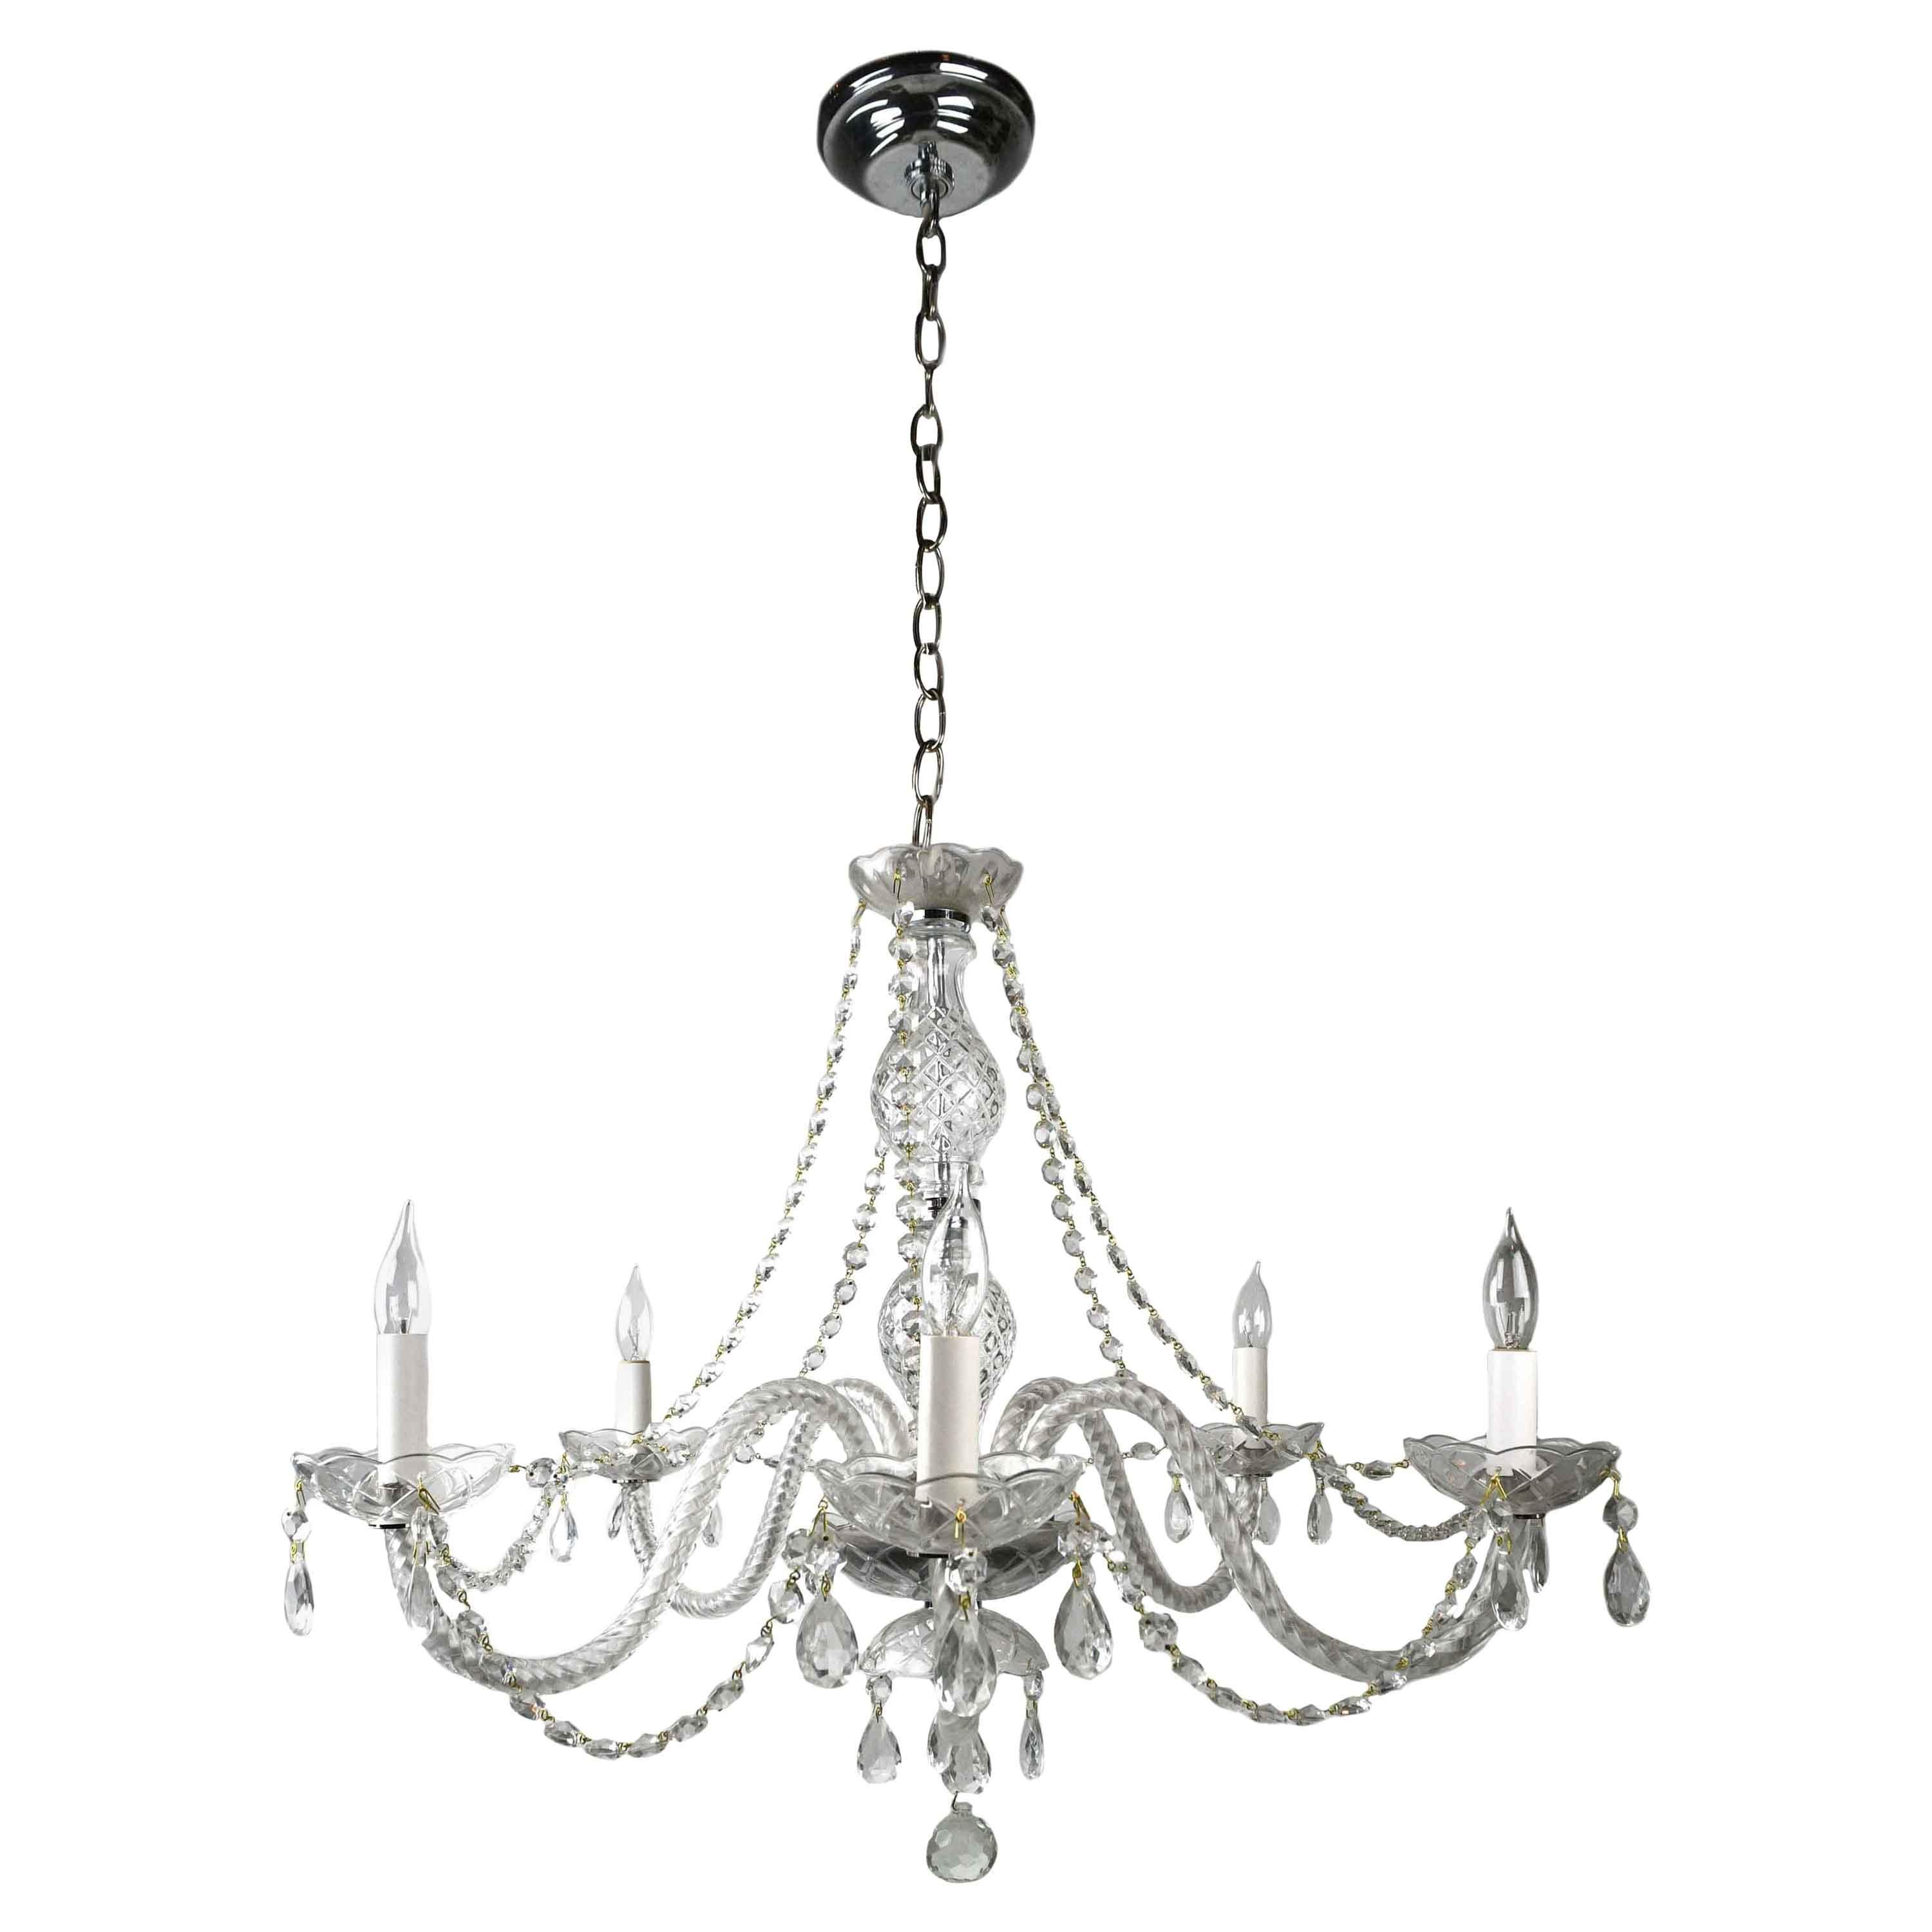 Elegance Crystal Swag Chandelier 6 Light Shades of Light